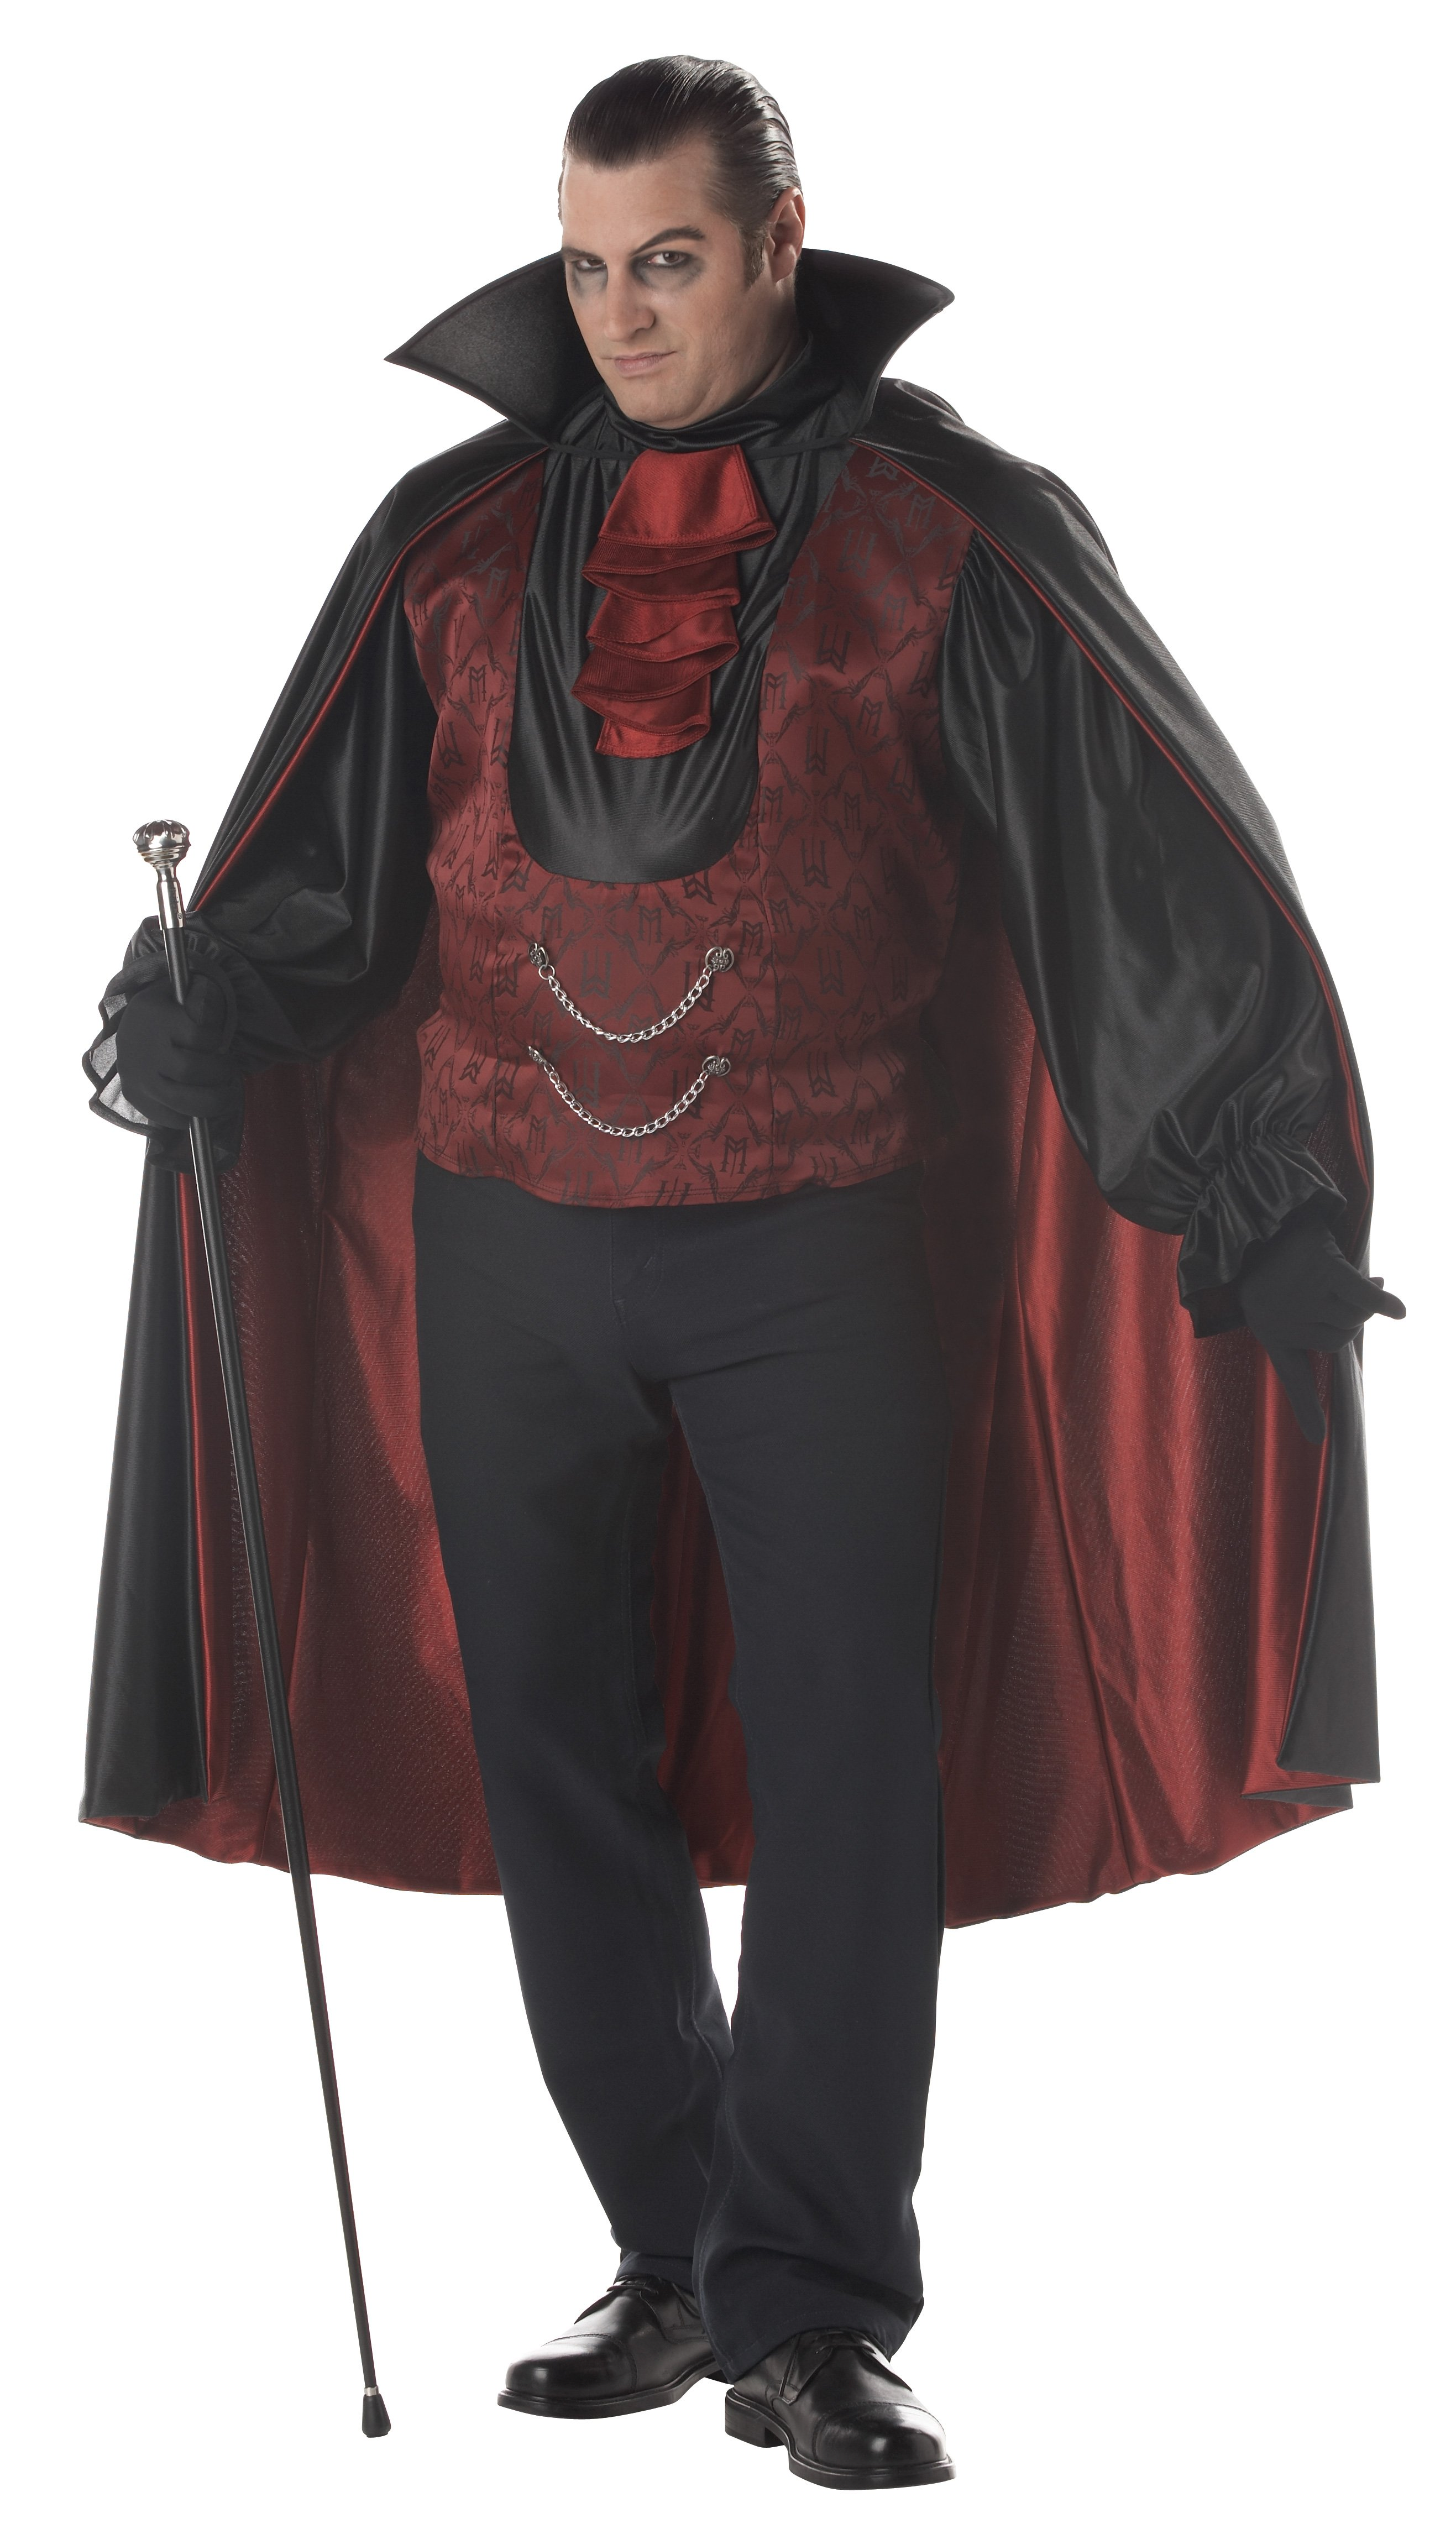 Count Bloodthirst Plus Adult Costume